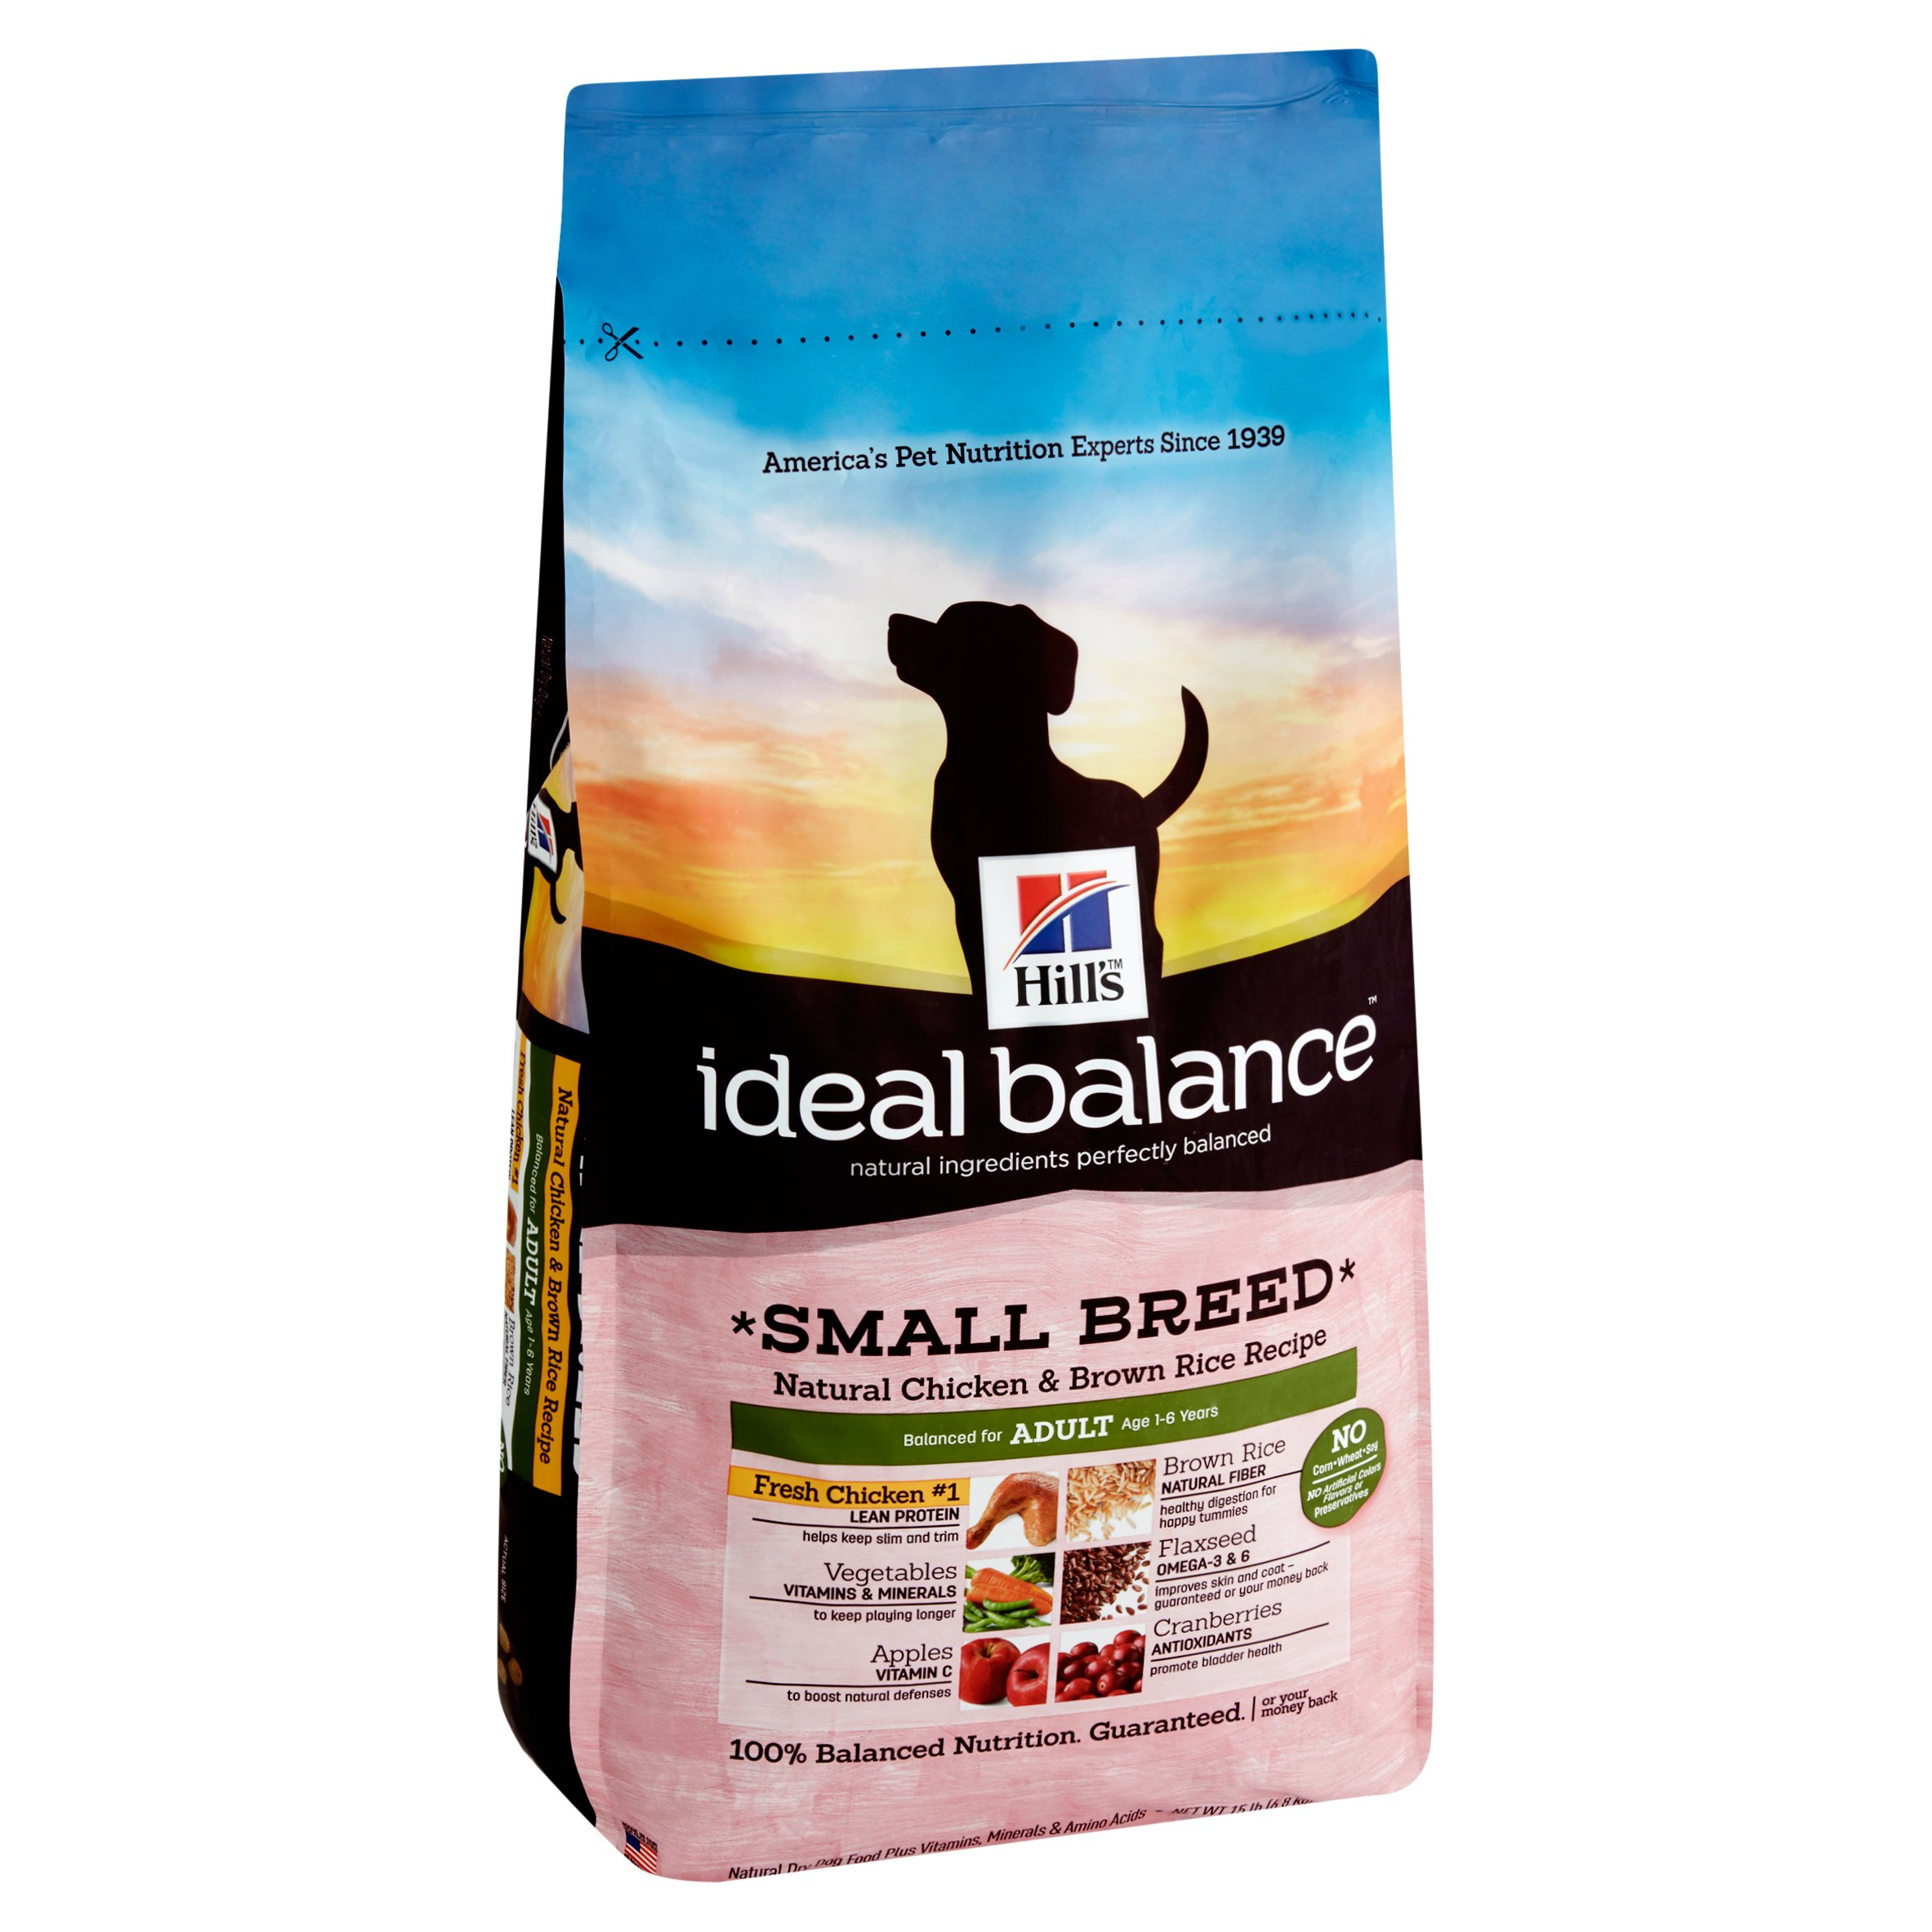 Hills Ideal Balance Adult Small Breed Natural Chicken Brown Rice